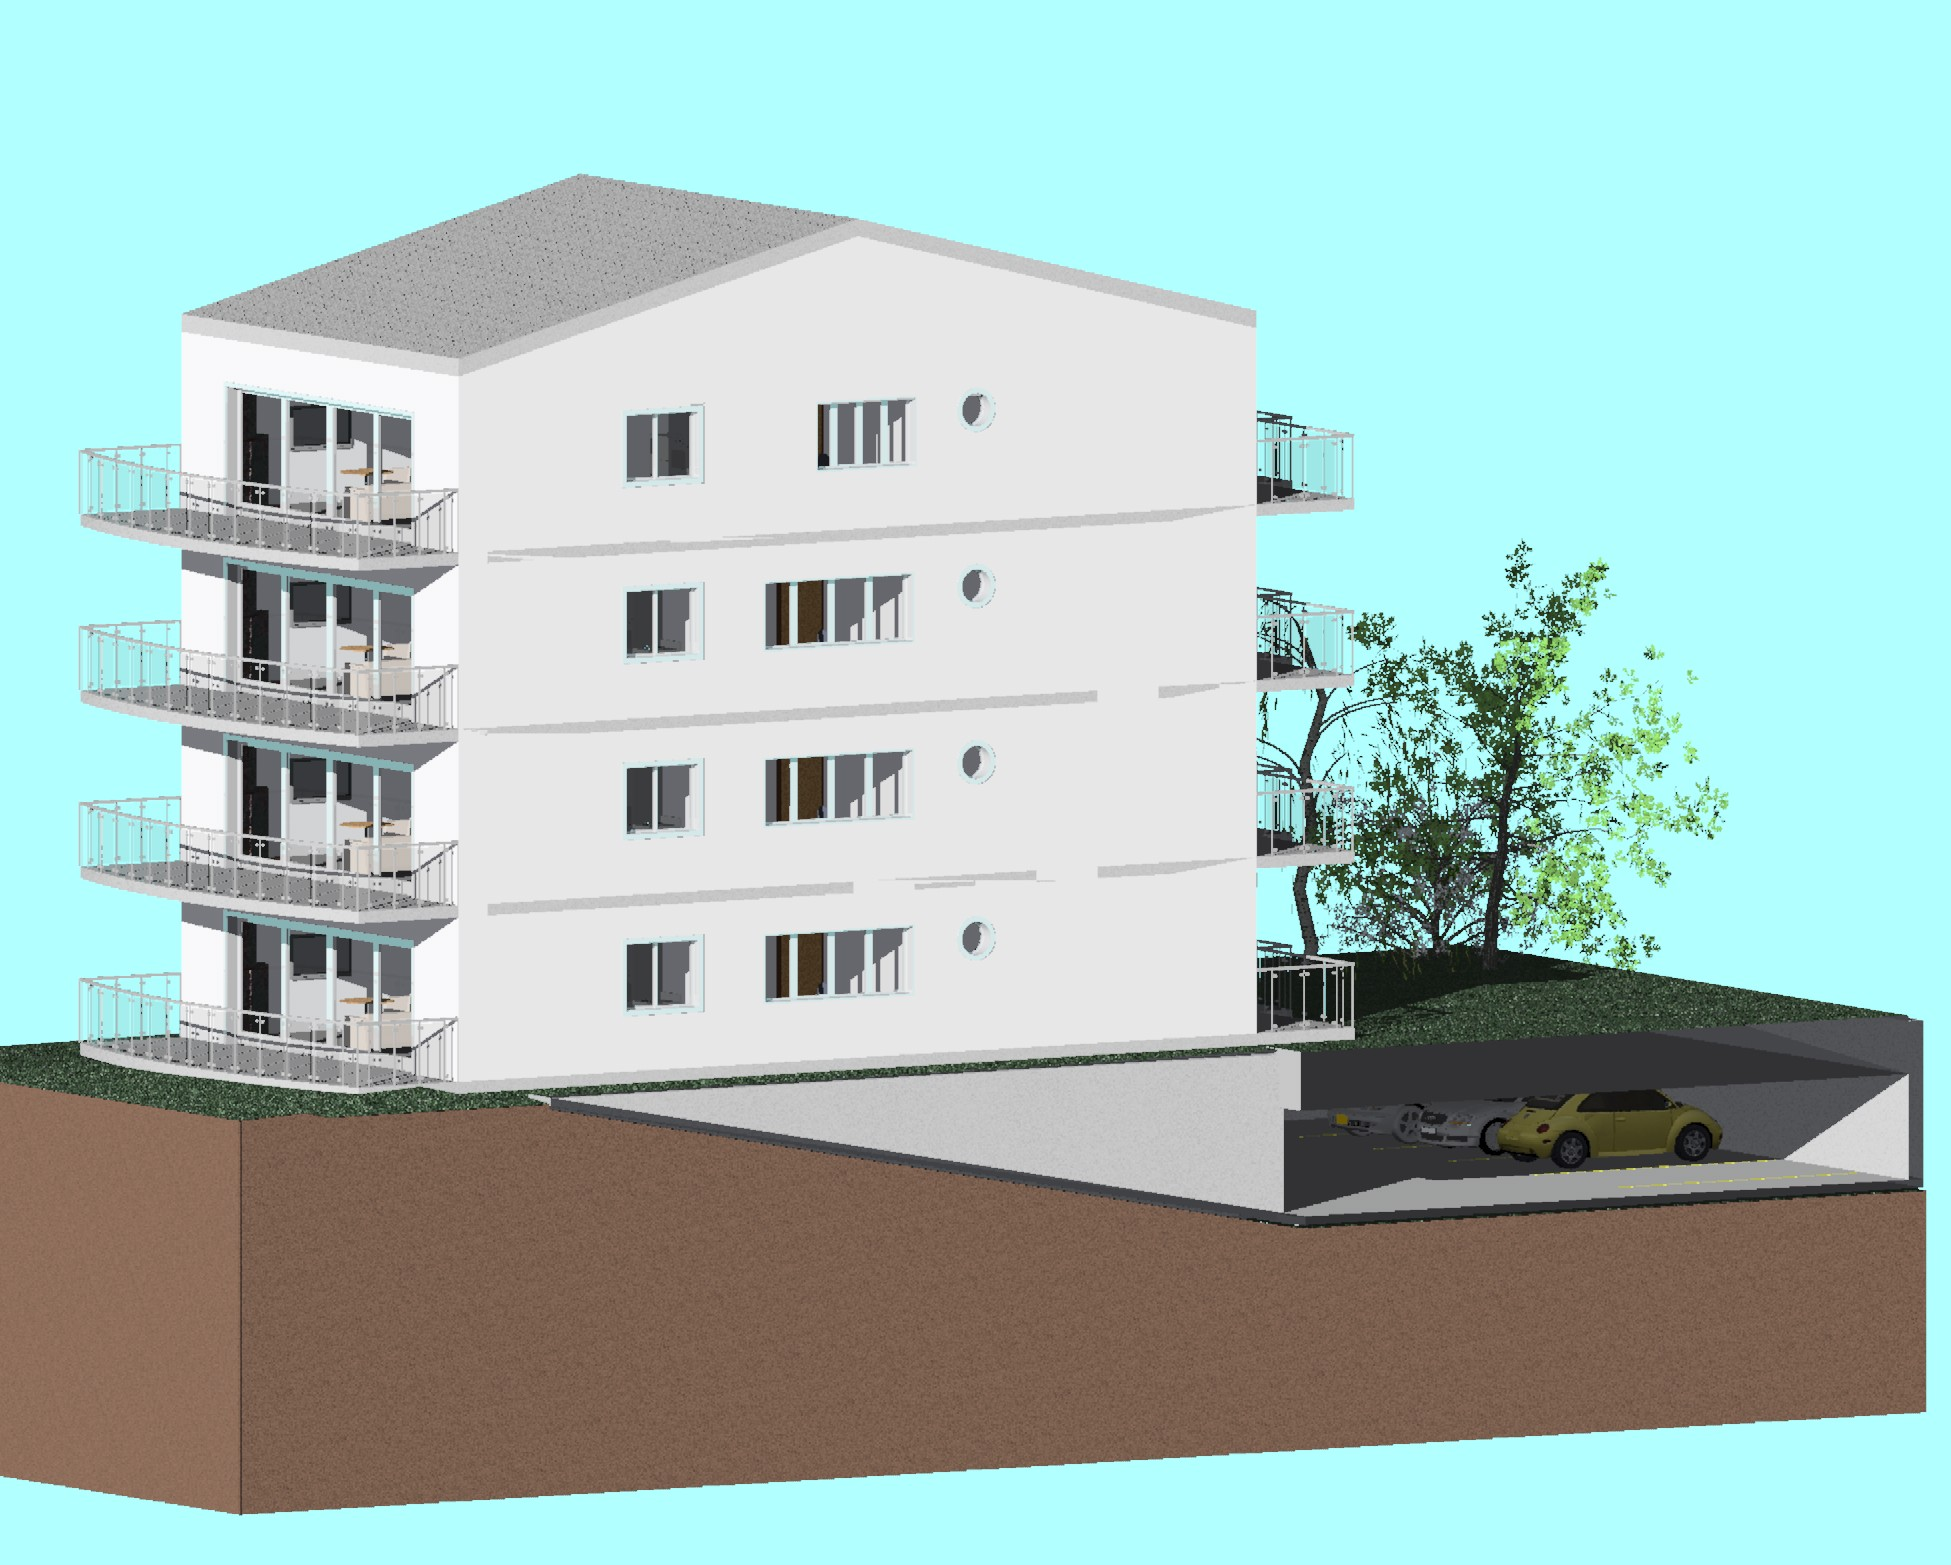 Appartment building with parking lot